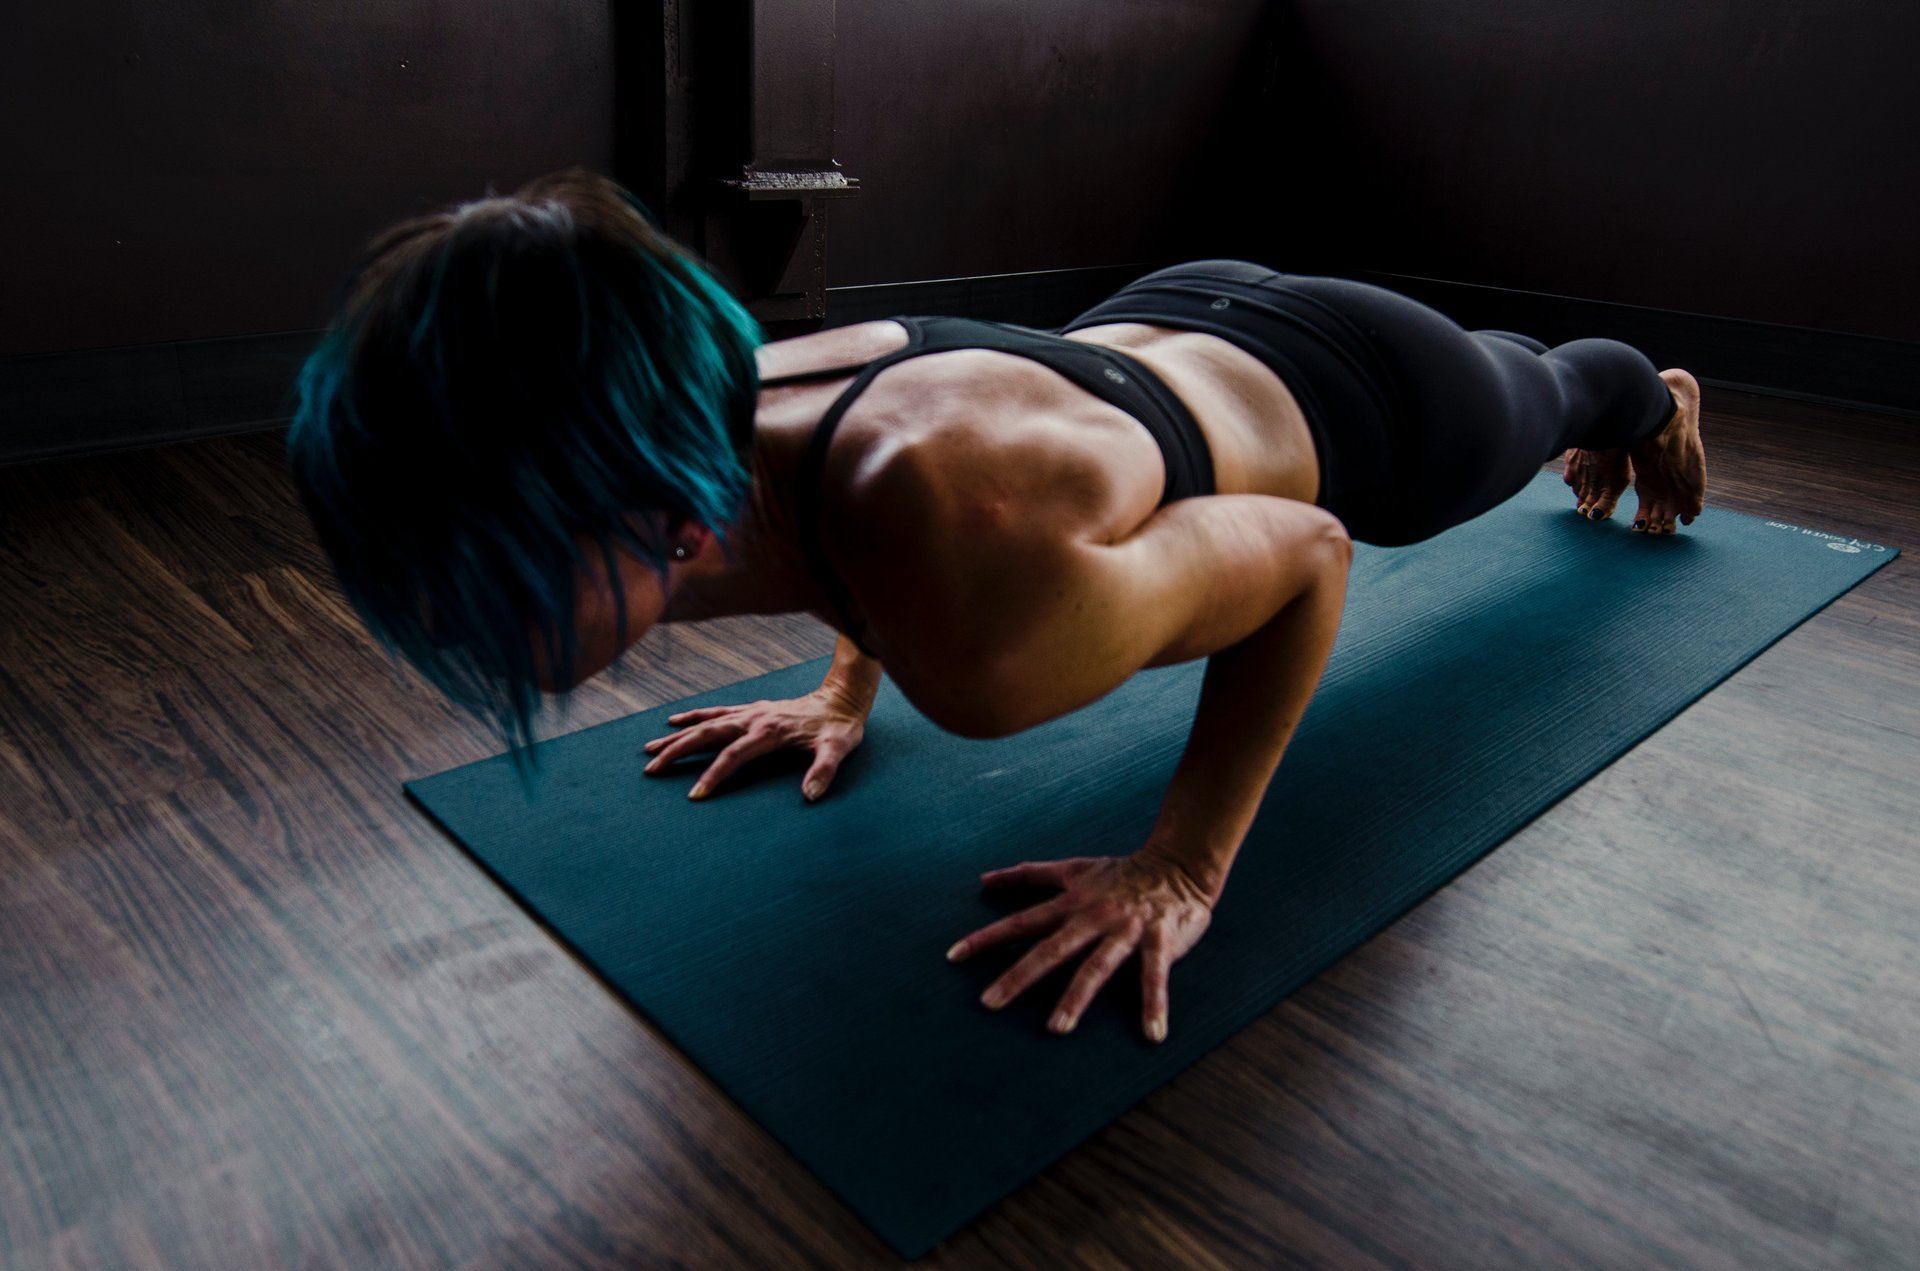 woman-doing-push-ups-2780762.jpg